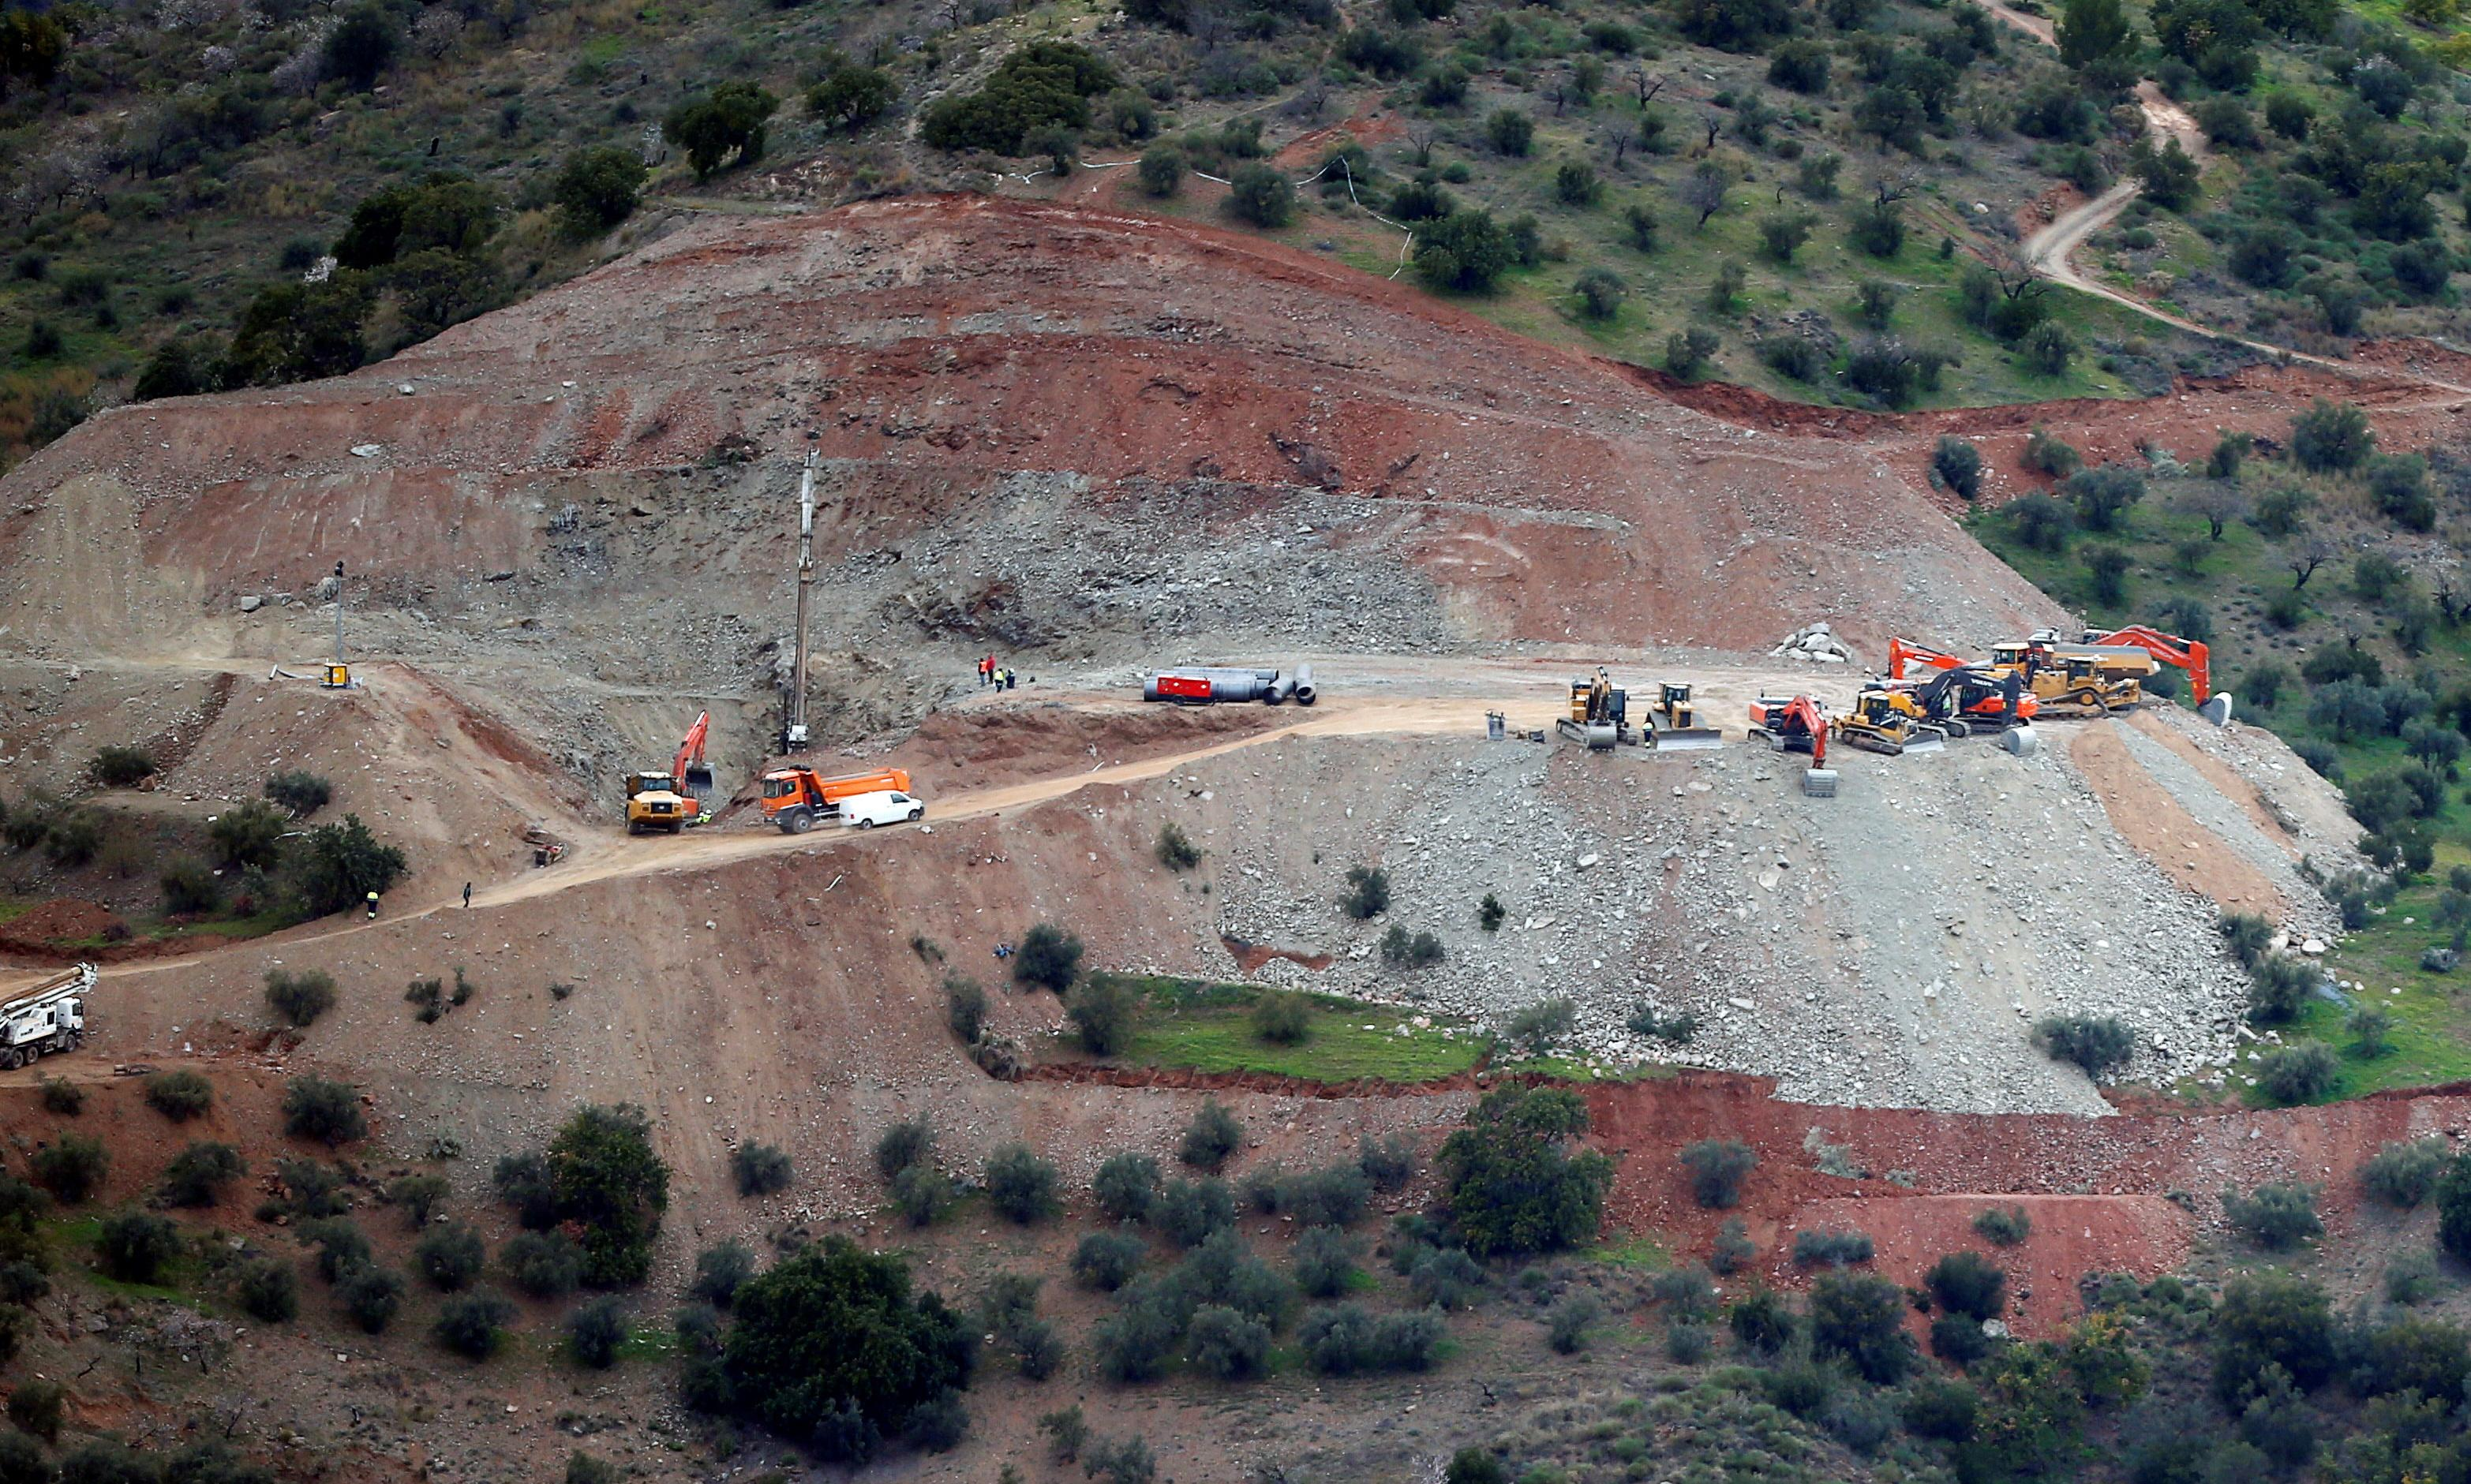 Trapped toddler: rescue attempt in Spain slowed as drill hits hard rock